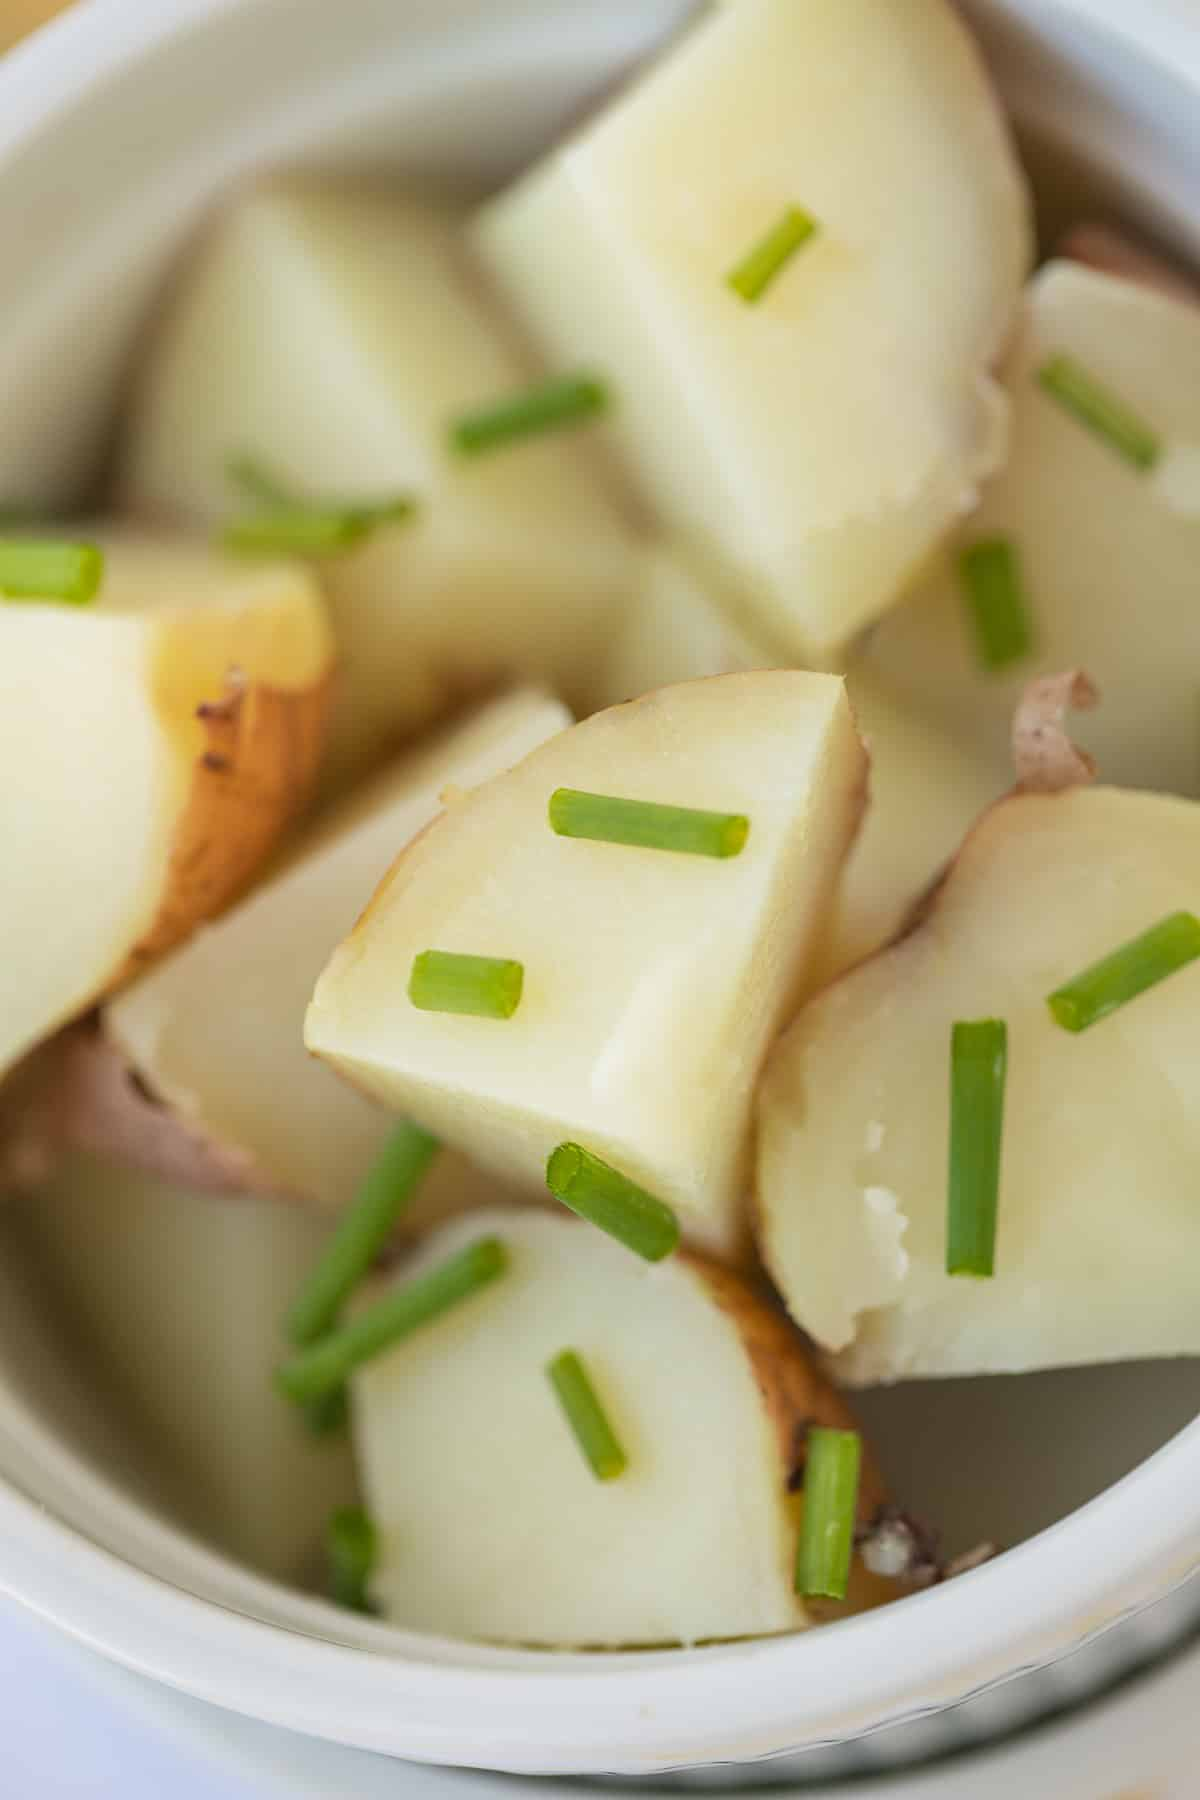 sliced red potatoes in a white bowl